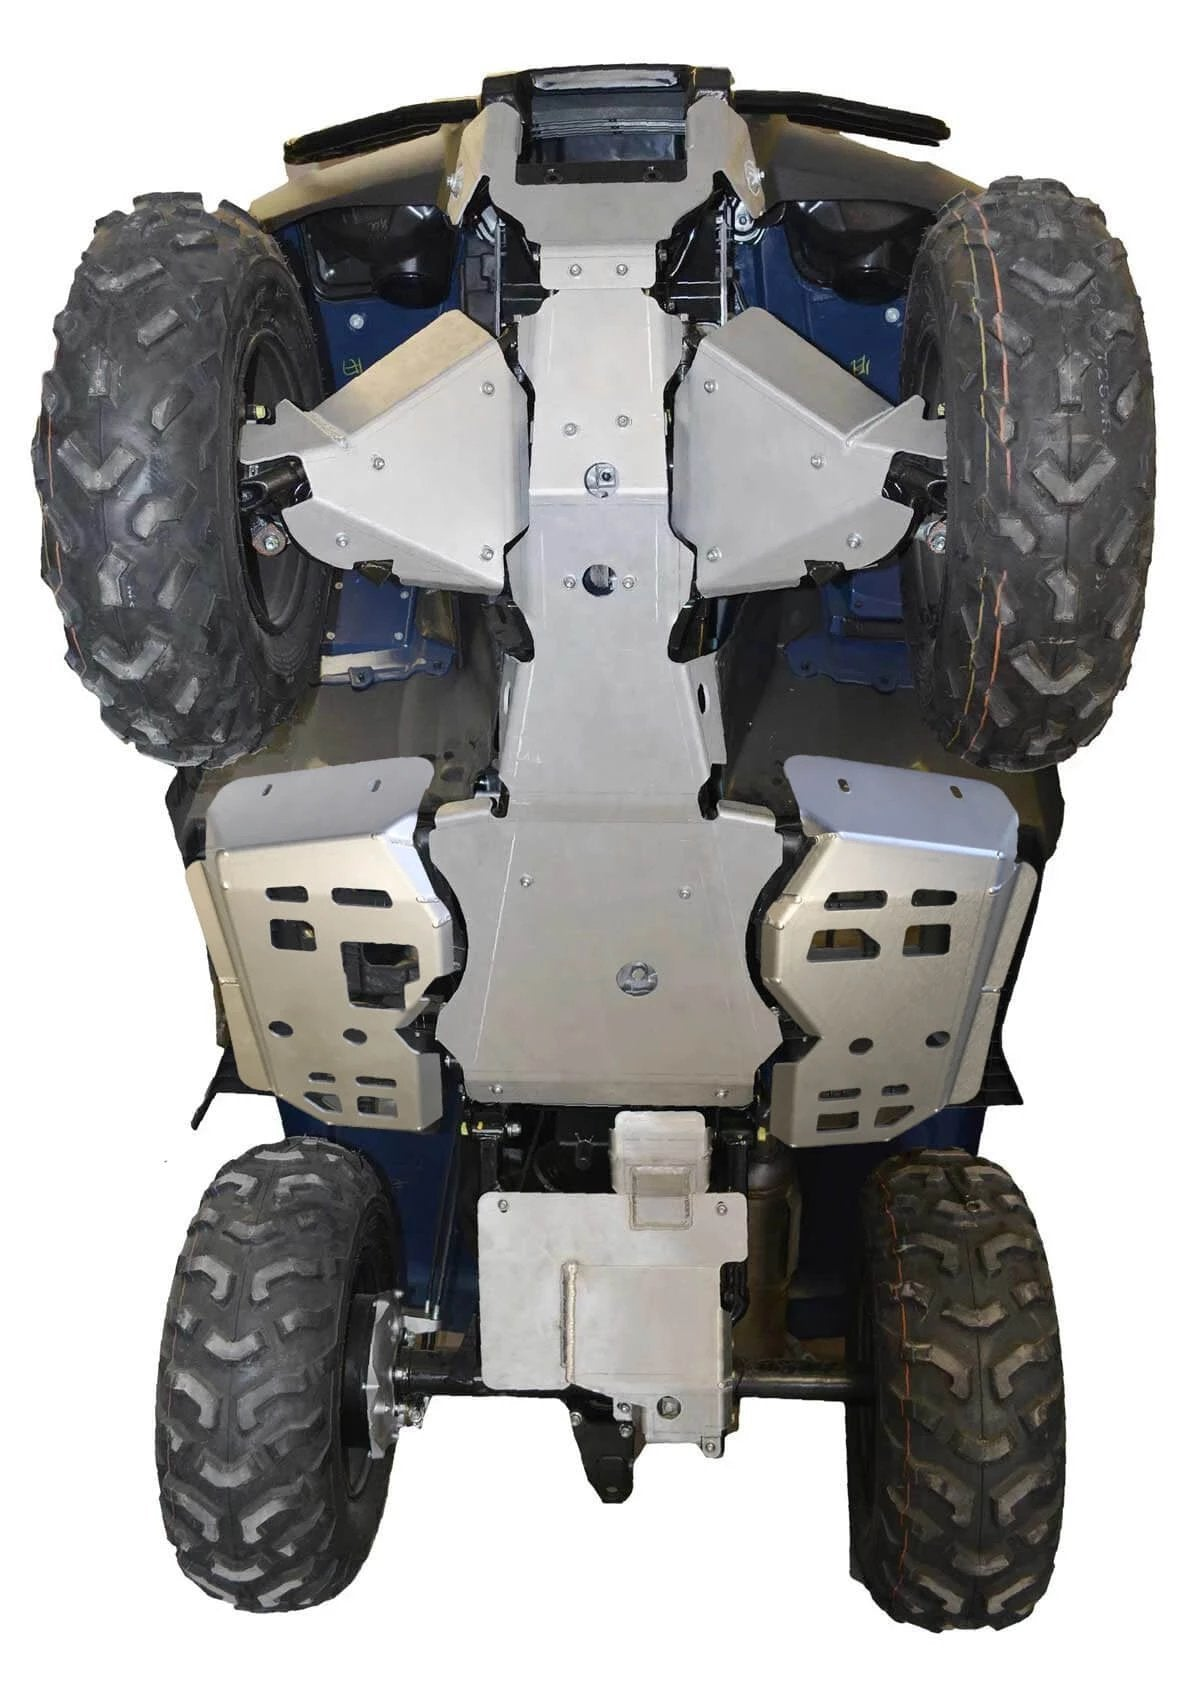 7-Piece Complete Aluminum Skid Plate Set, Honda TRX420 Fourtrax Rancher (Straight Axle)